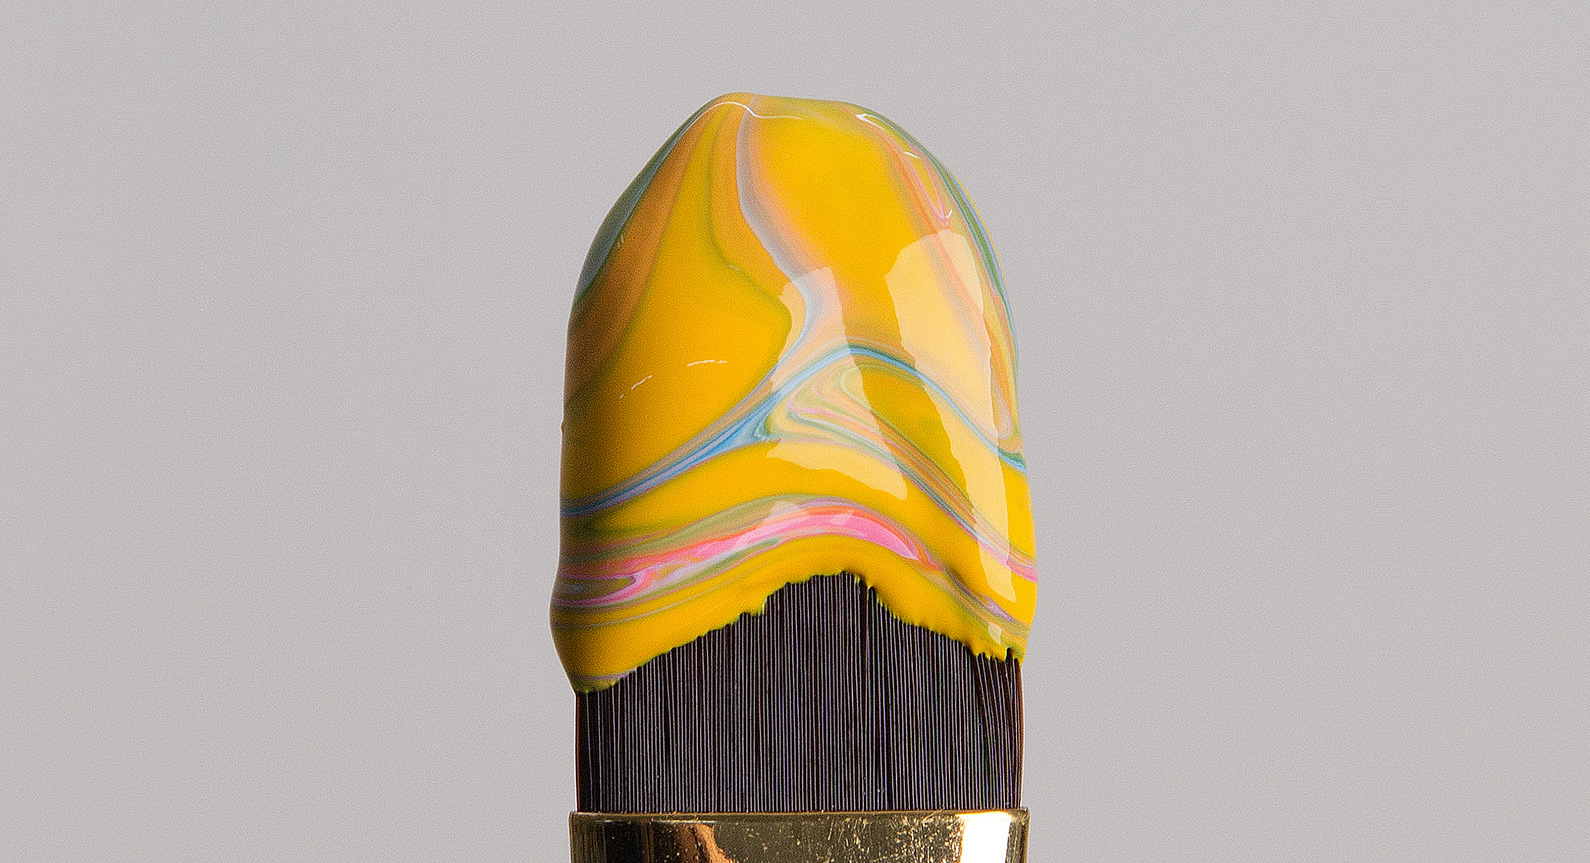 Good Enough To Eat: Swirling 'Ice Cream' Paint Brushes By José Lourenço